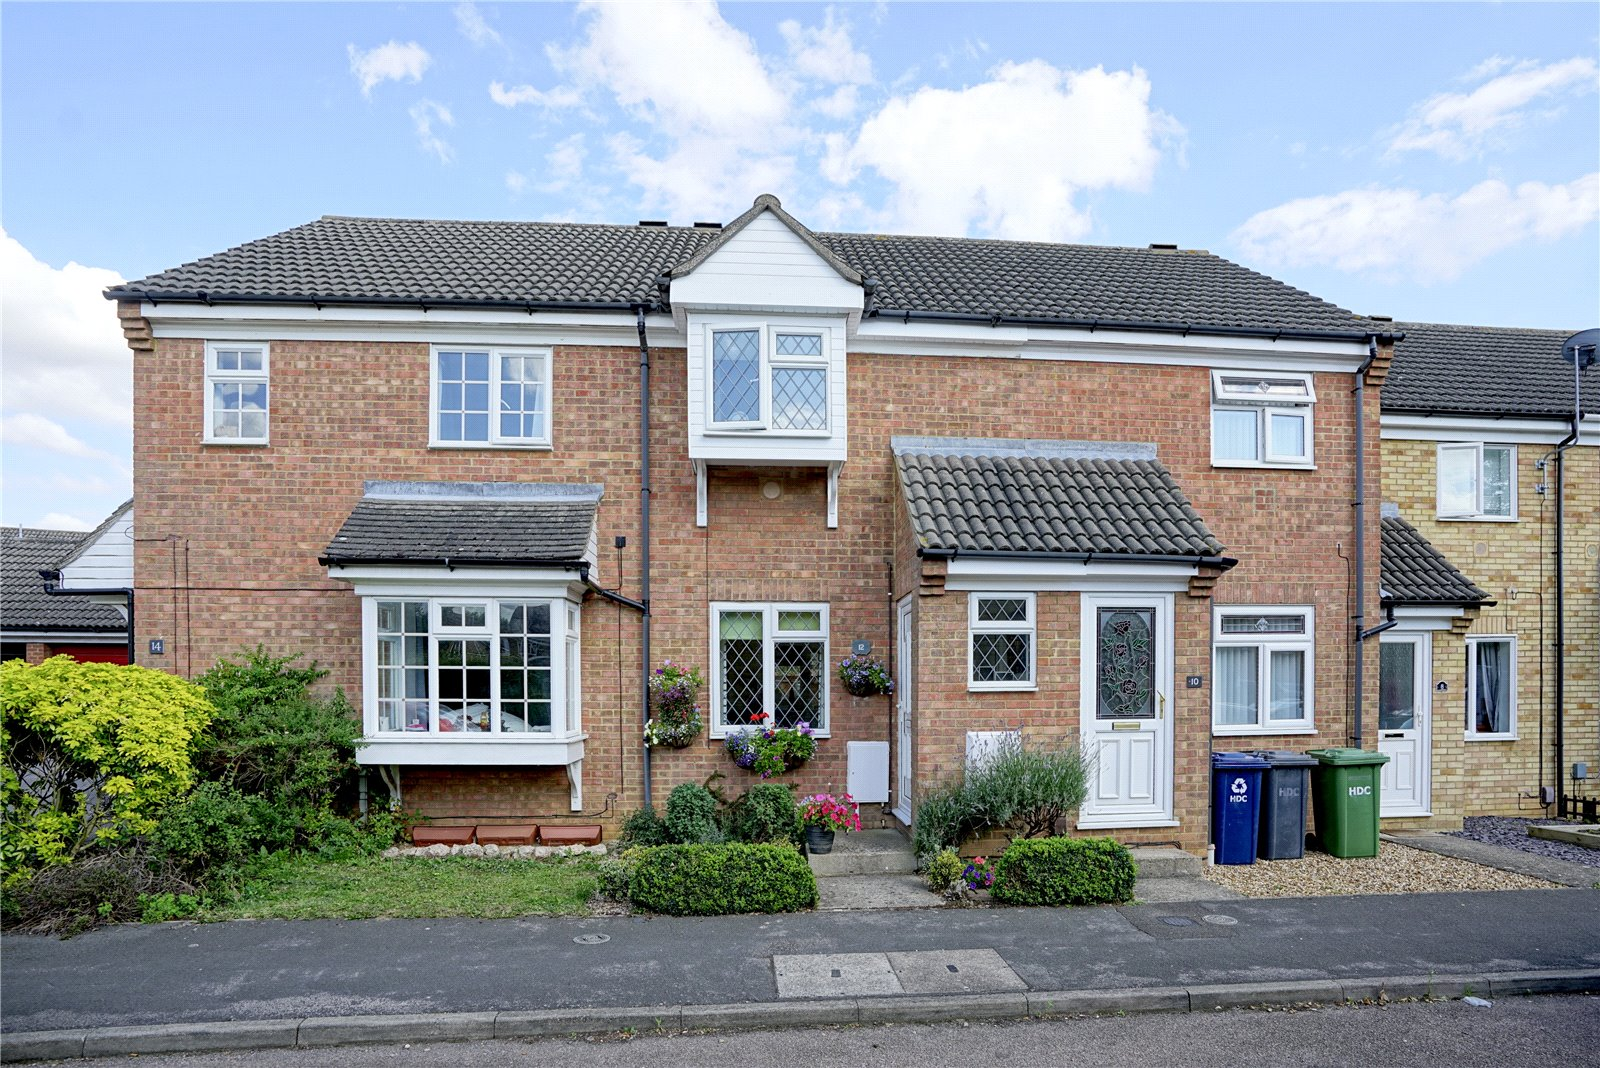 2 bed house for sale in Chawston Close, Eaton Socon, PE19